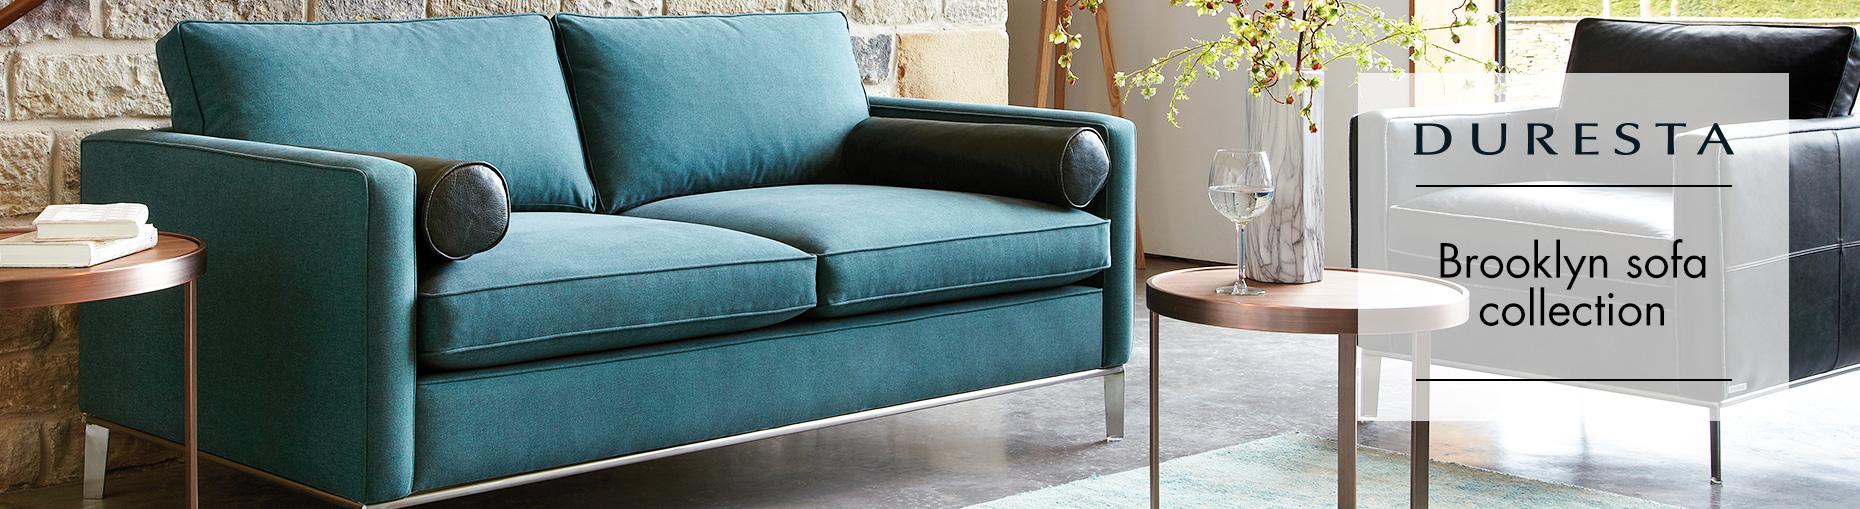 Brooklyn Fabric Sofa Collection by Domus from Duresta at Forrest Furnishing